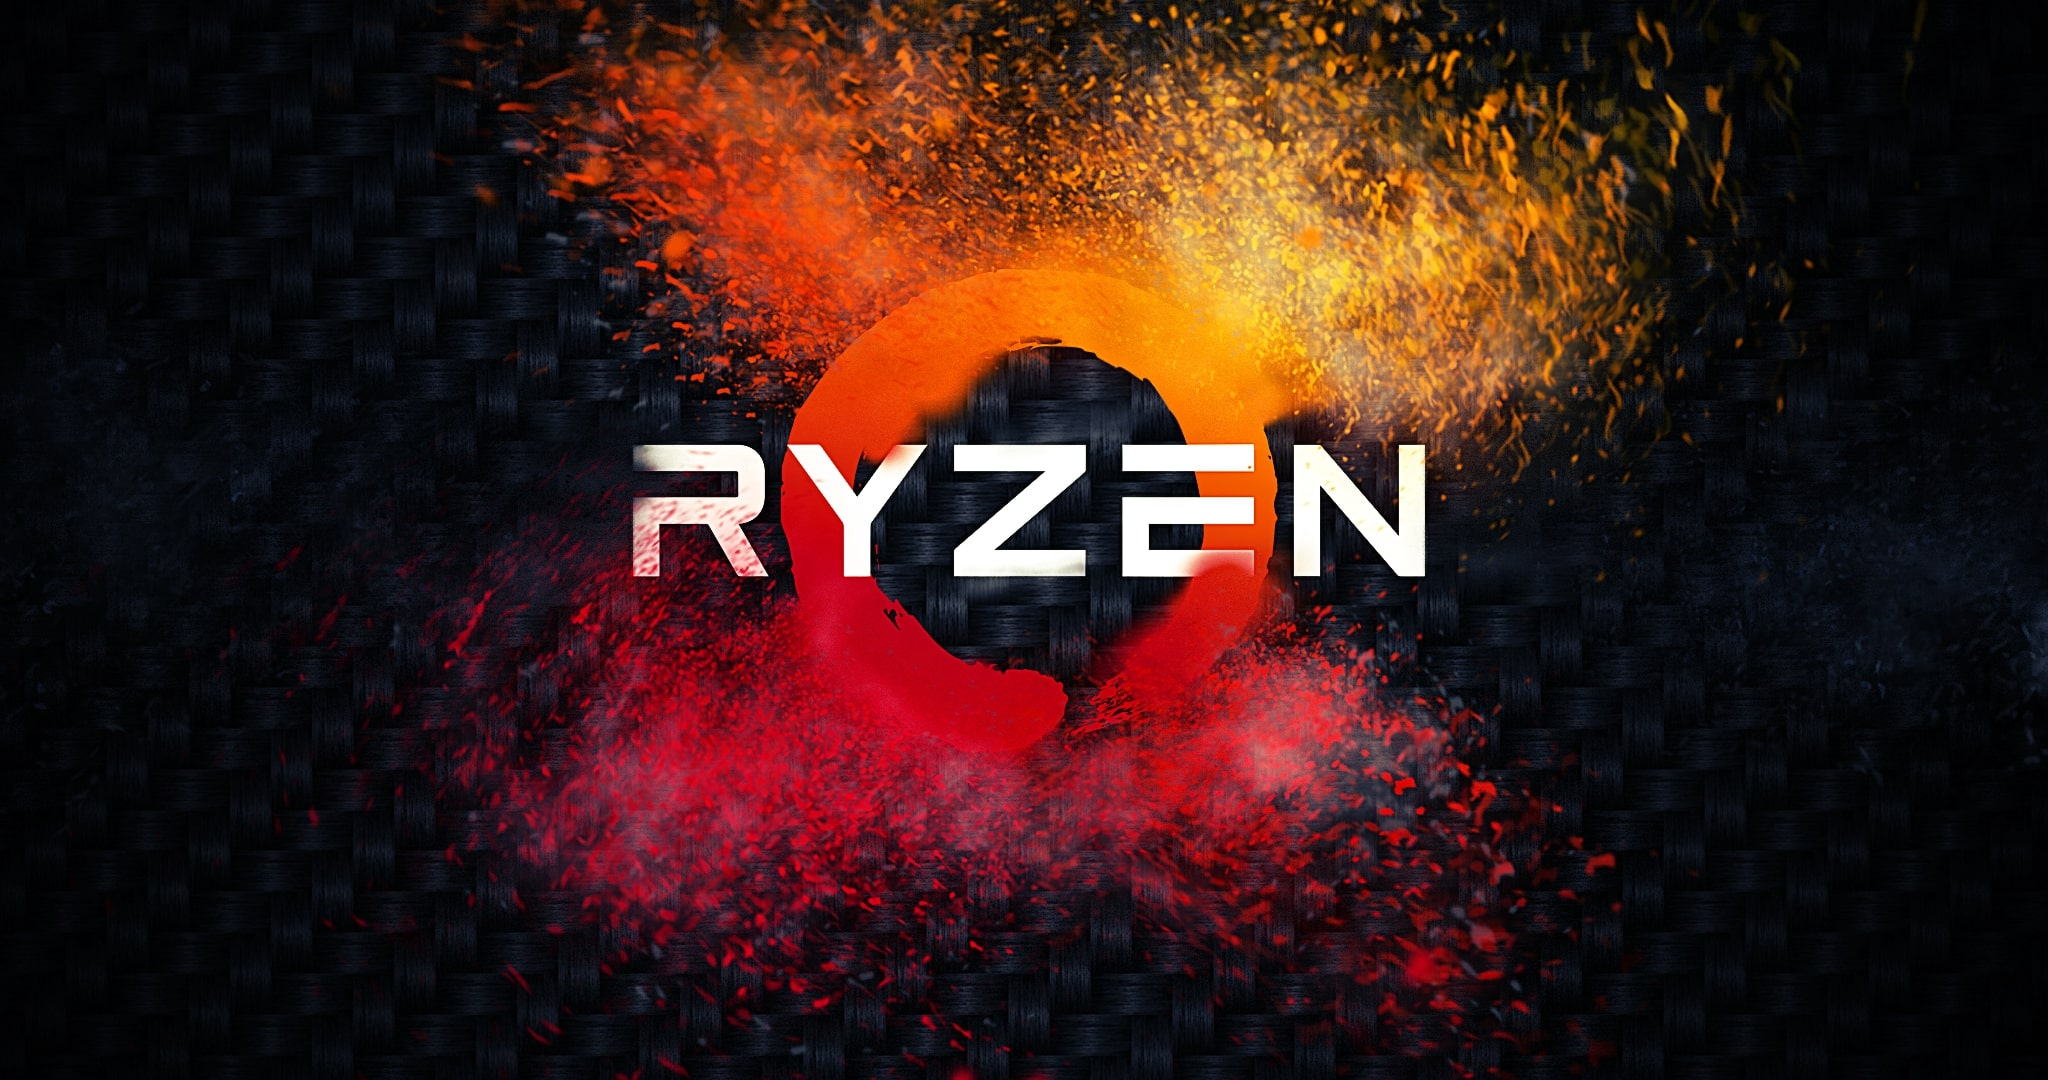 Amd Ryzen Wallpapers Top Free Amd Ryzen Backgrounds